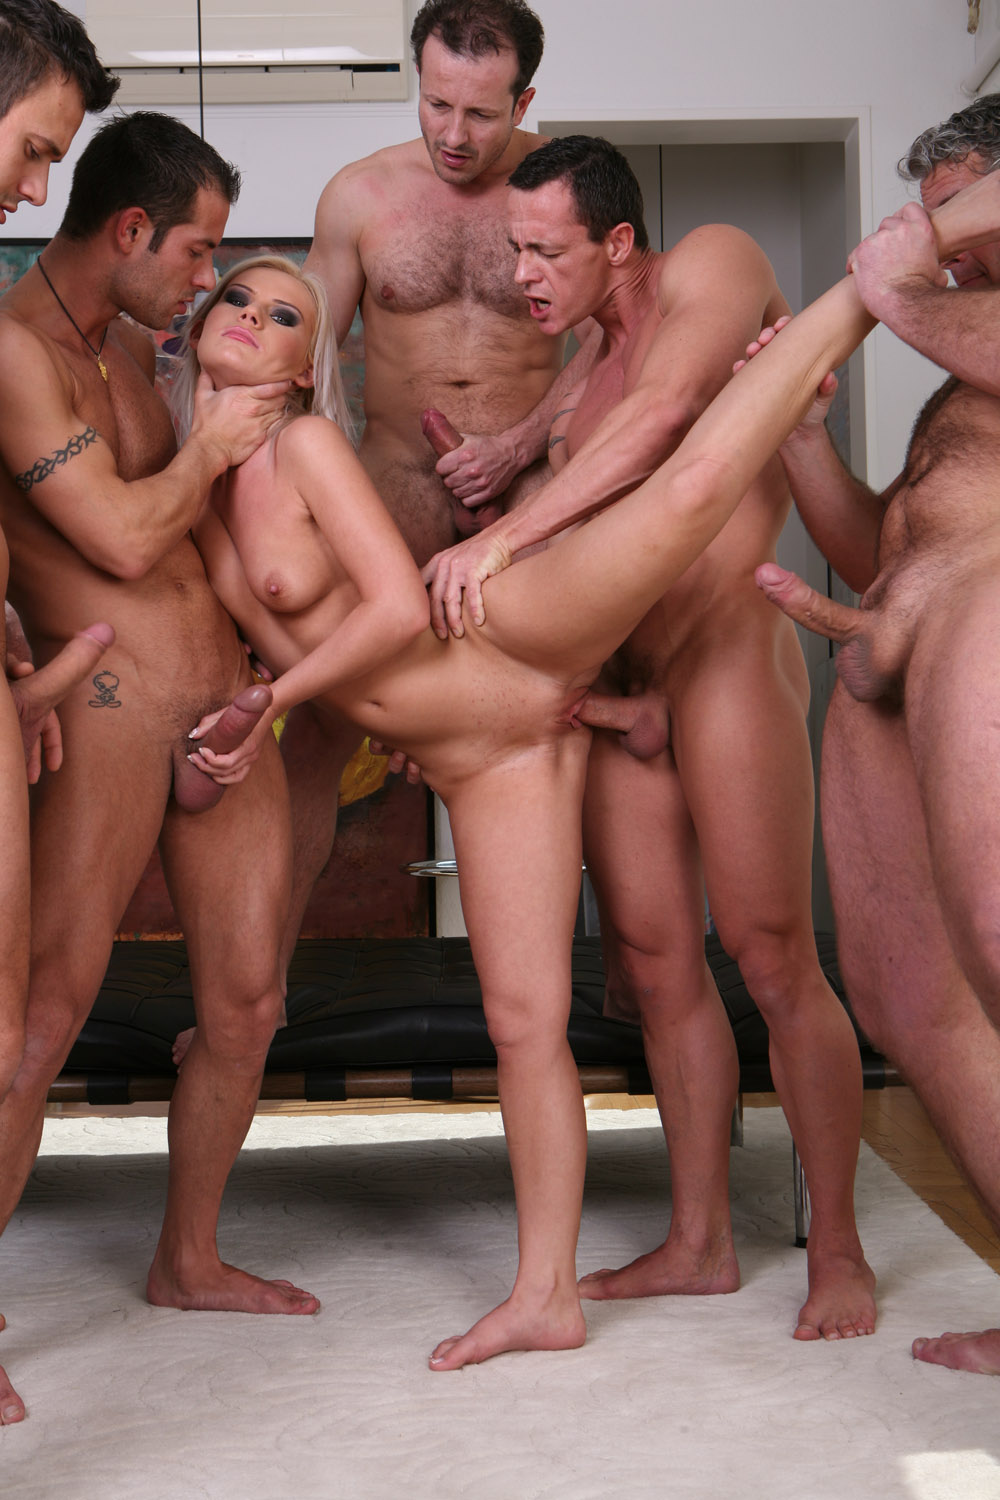 Gang bang naked woman pron scene